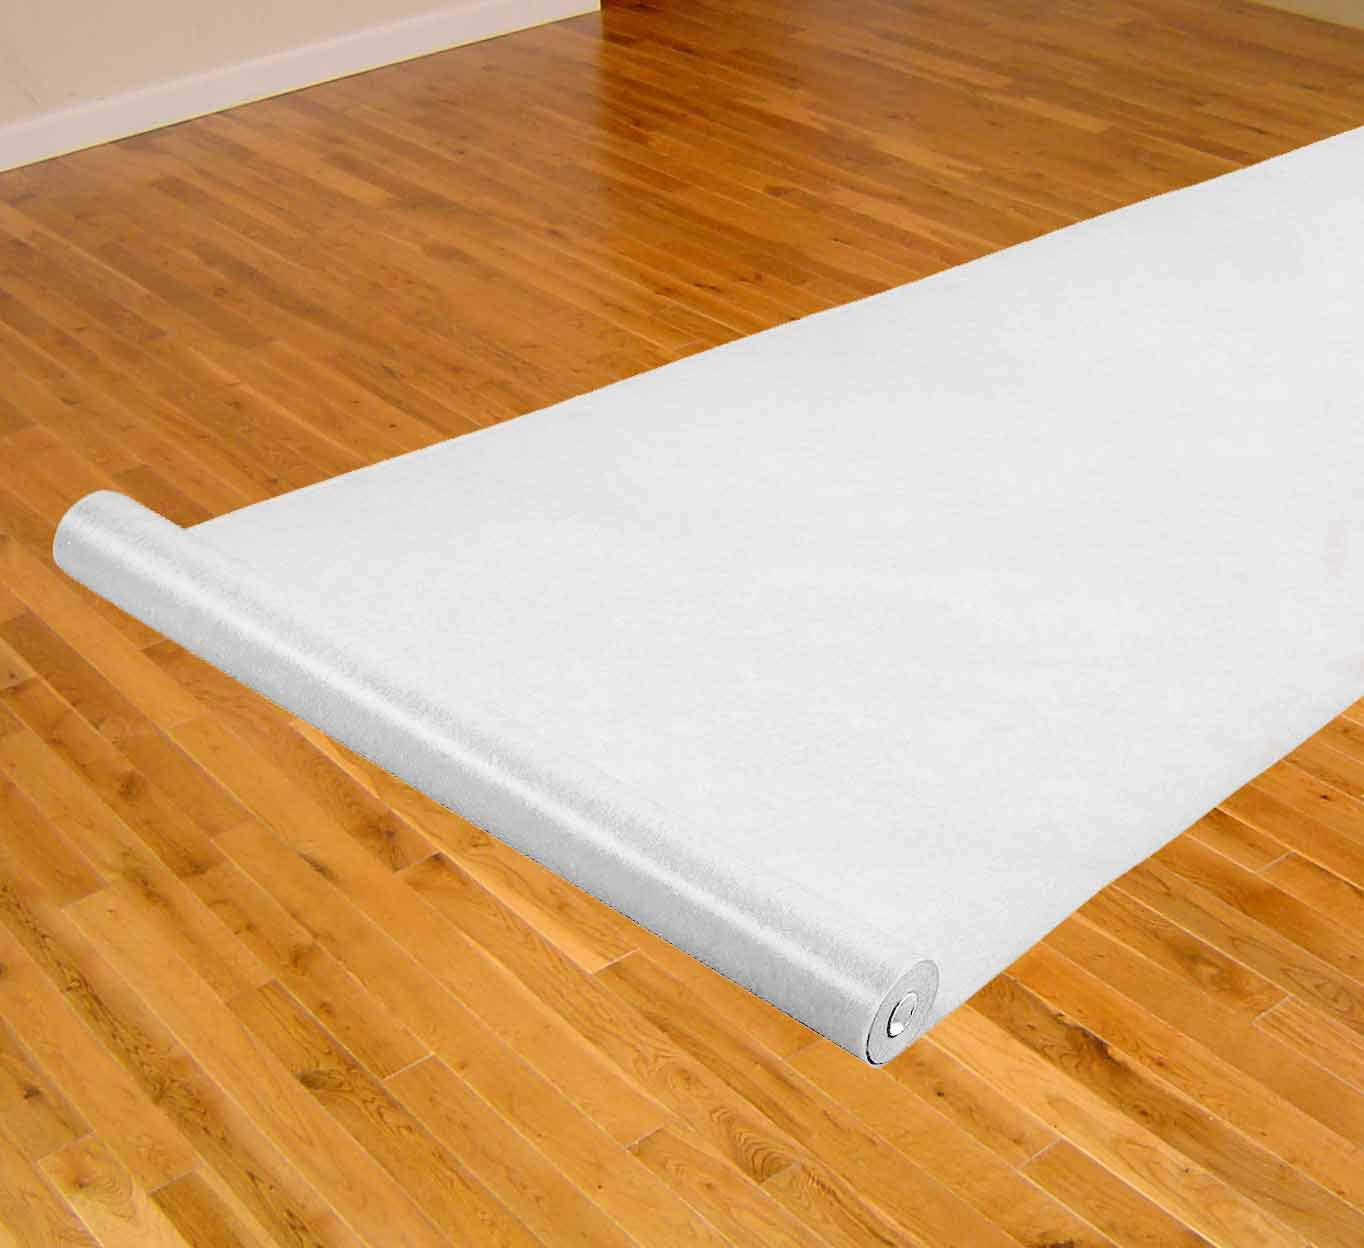 "White Thick Carpet Roll Runner For Aisle Weddings, New Year's Eve, Hollywood Party, and Other Events, Thicker for Long Lasting 3'6"" x 100' Feet"